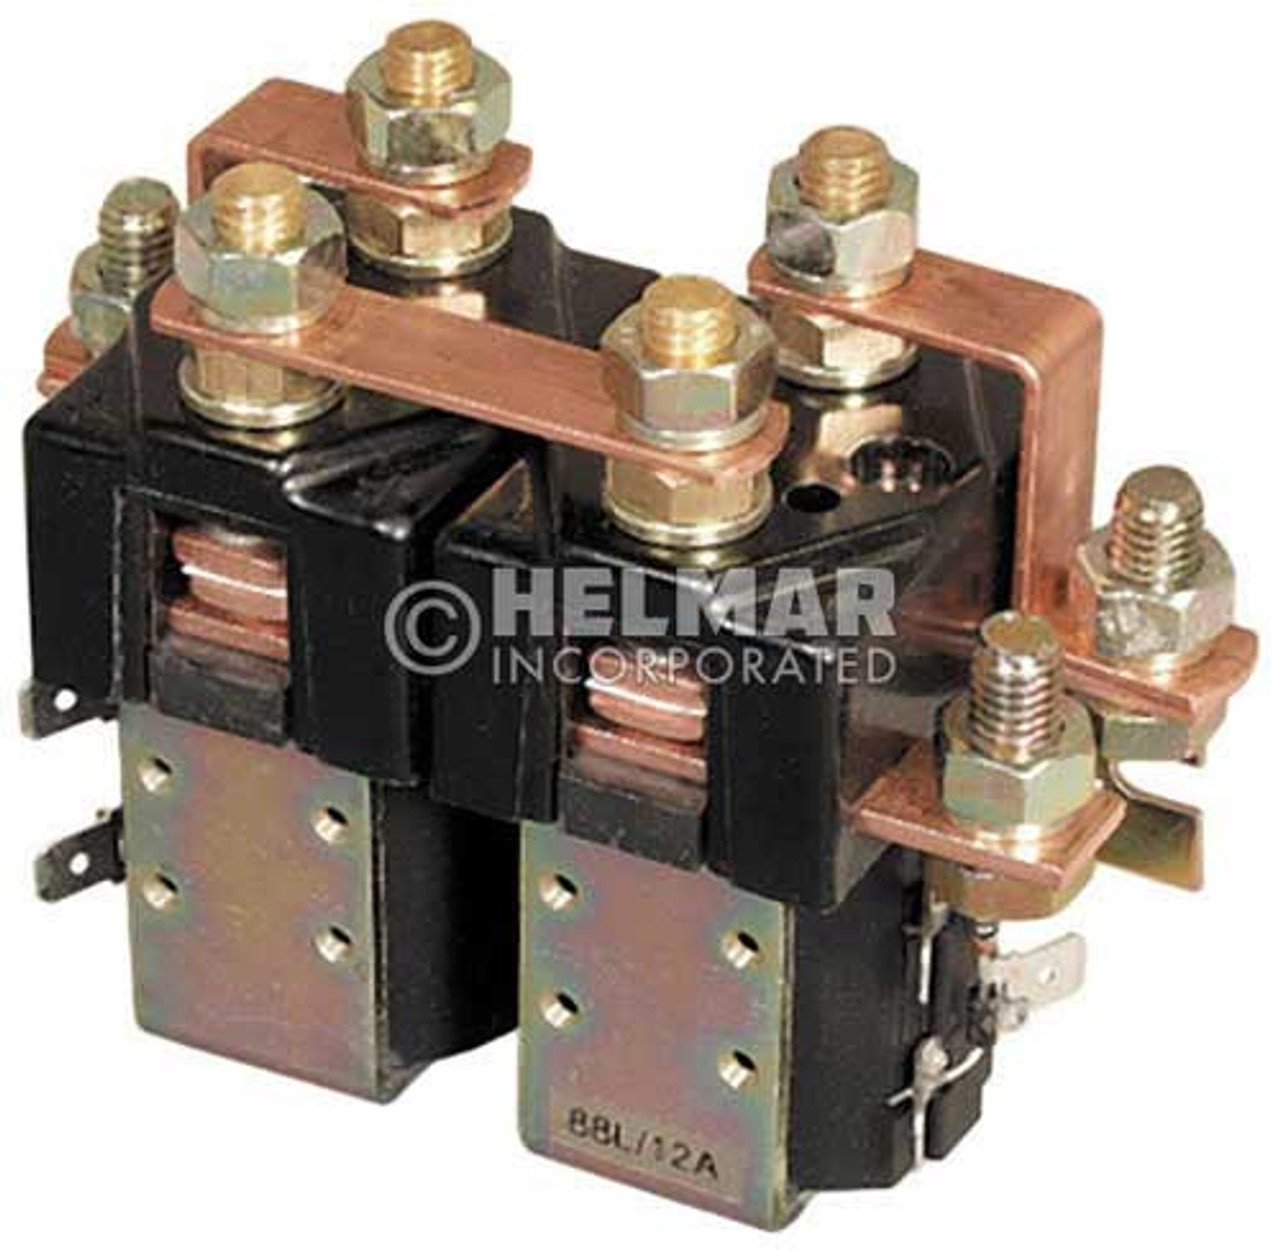 CTR-12-106 12 Volt 80 Amp Contactor, Double Pole - Double Throw - Intermittent Coil